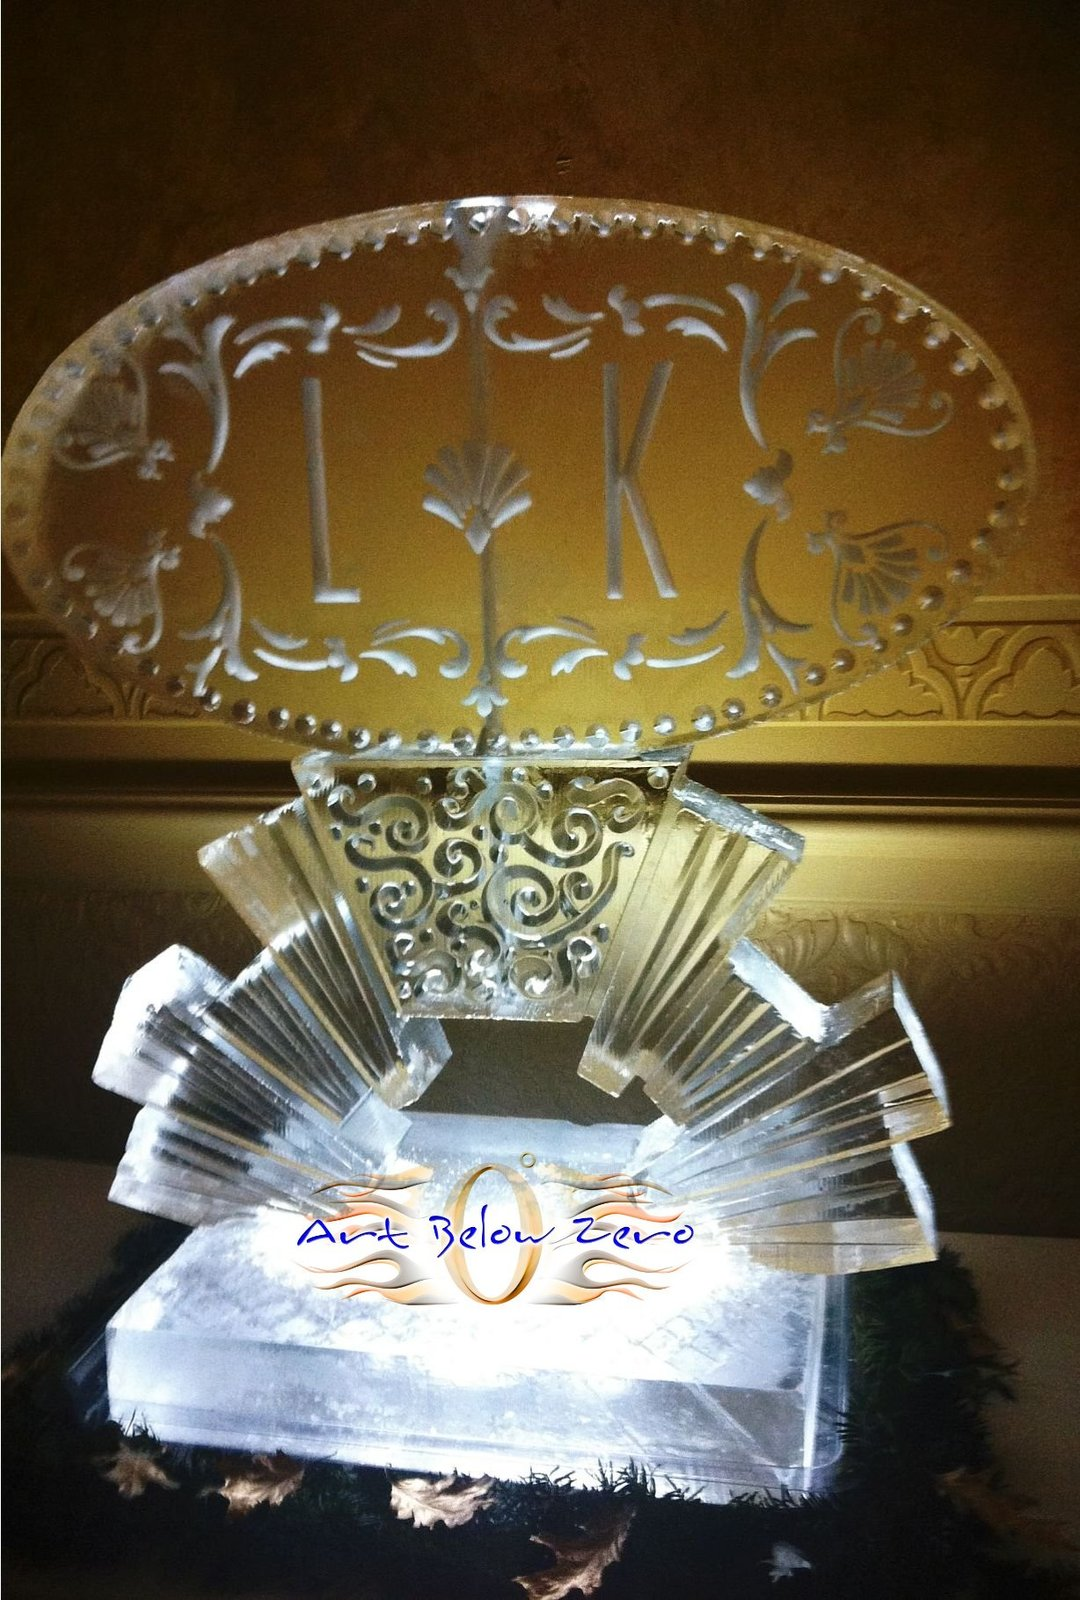 Art_deco_monogram_luge_on_sunburst_pedestal_ice_sculpture